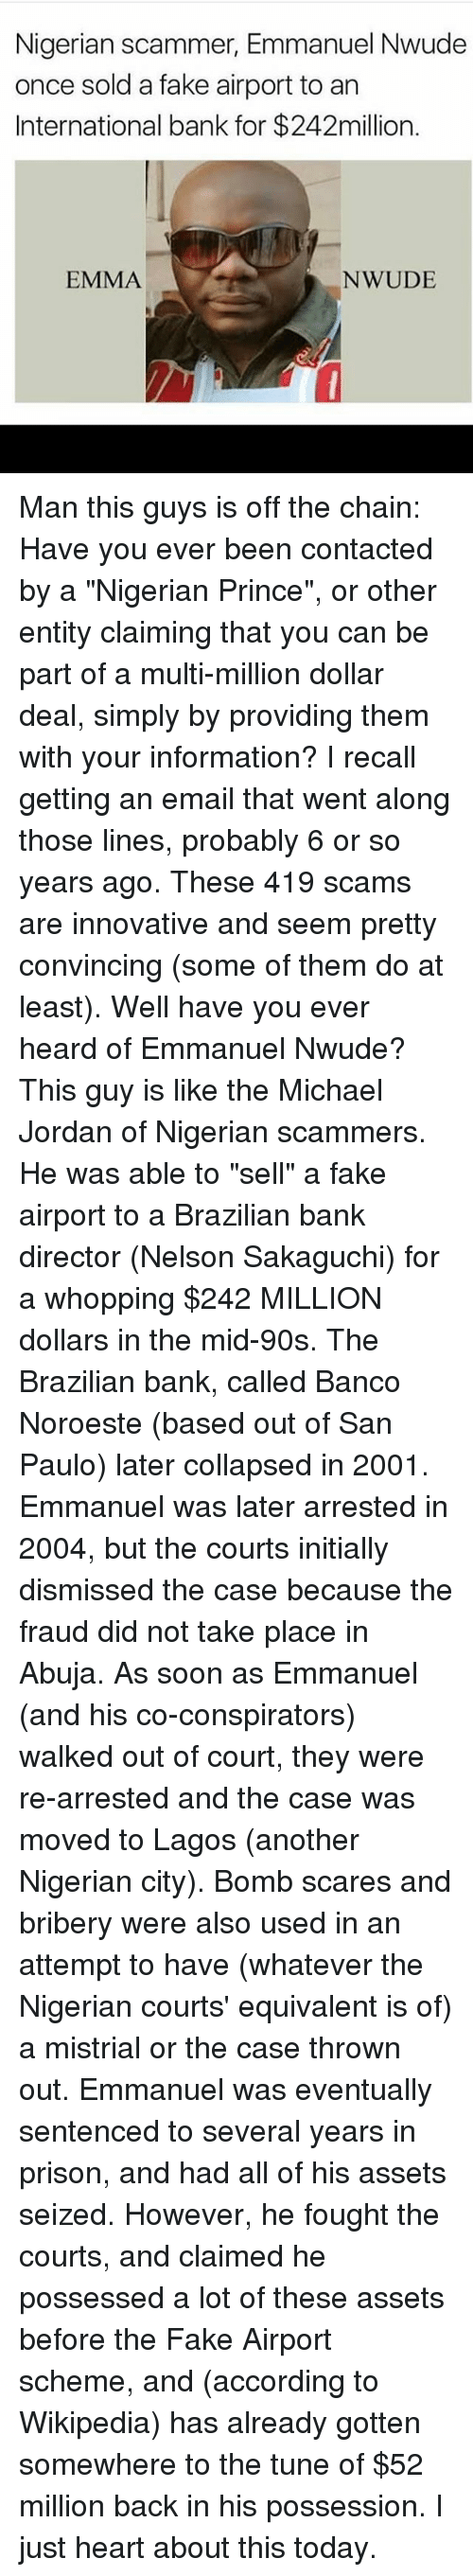 Nigerian Scammer Emmanuel Nwude Once Sold a Fake Airport to an